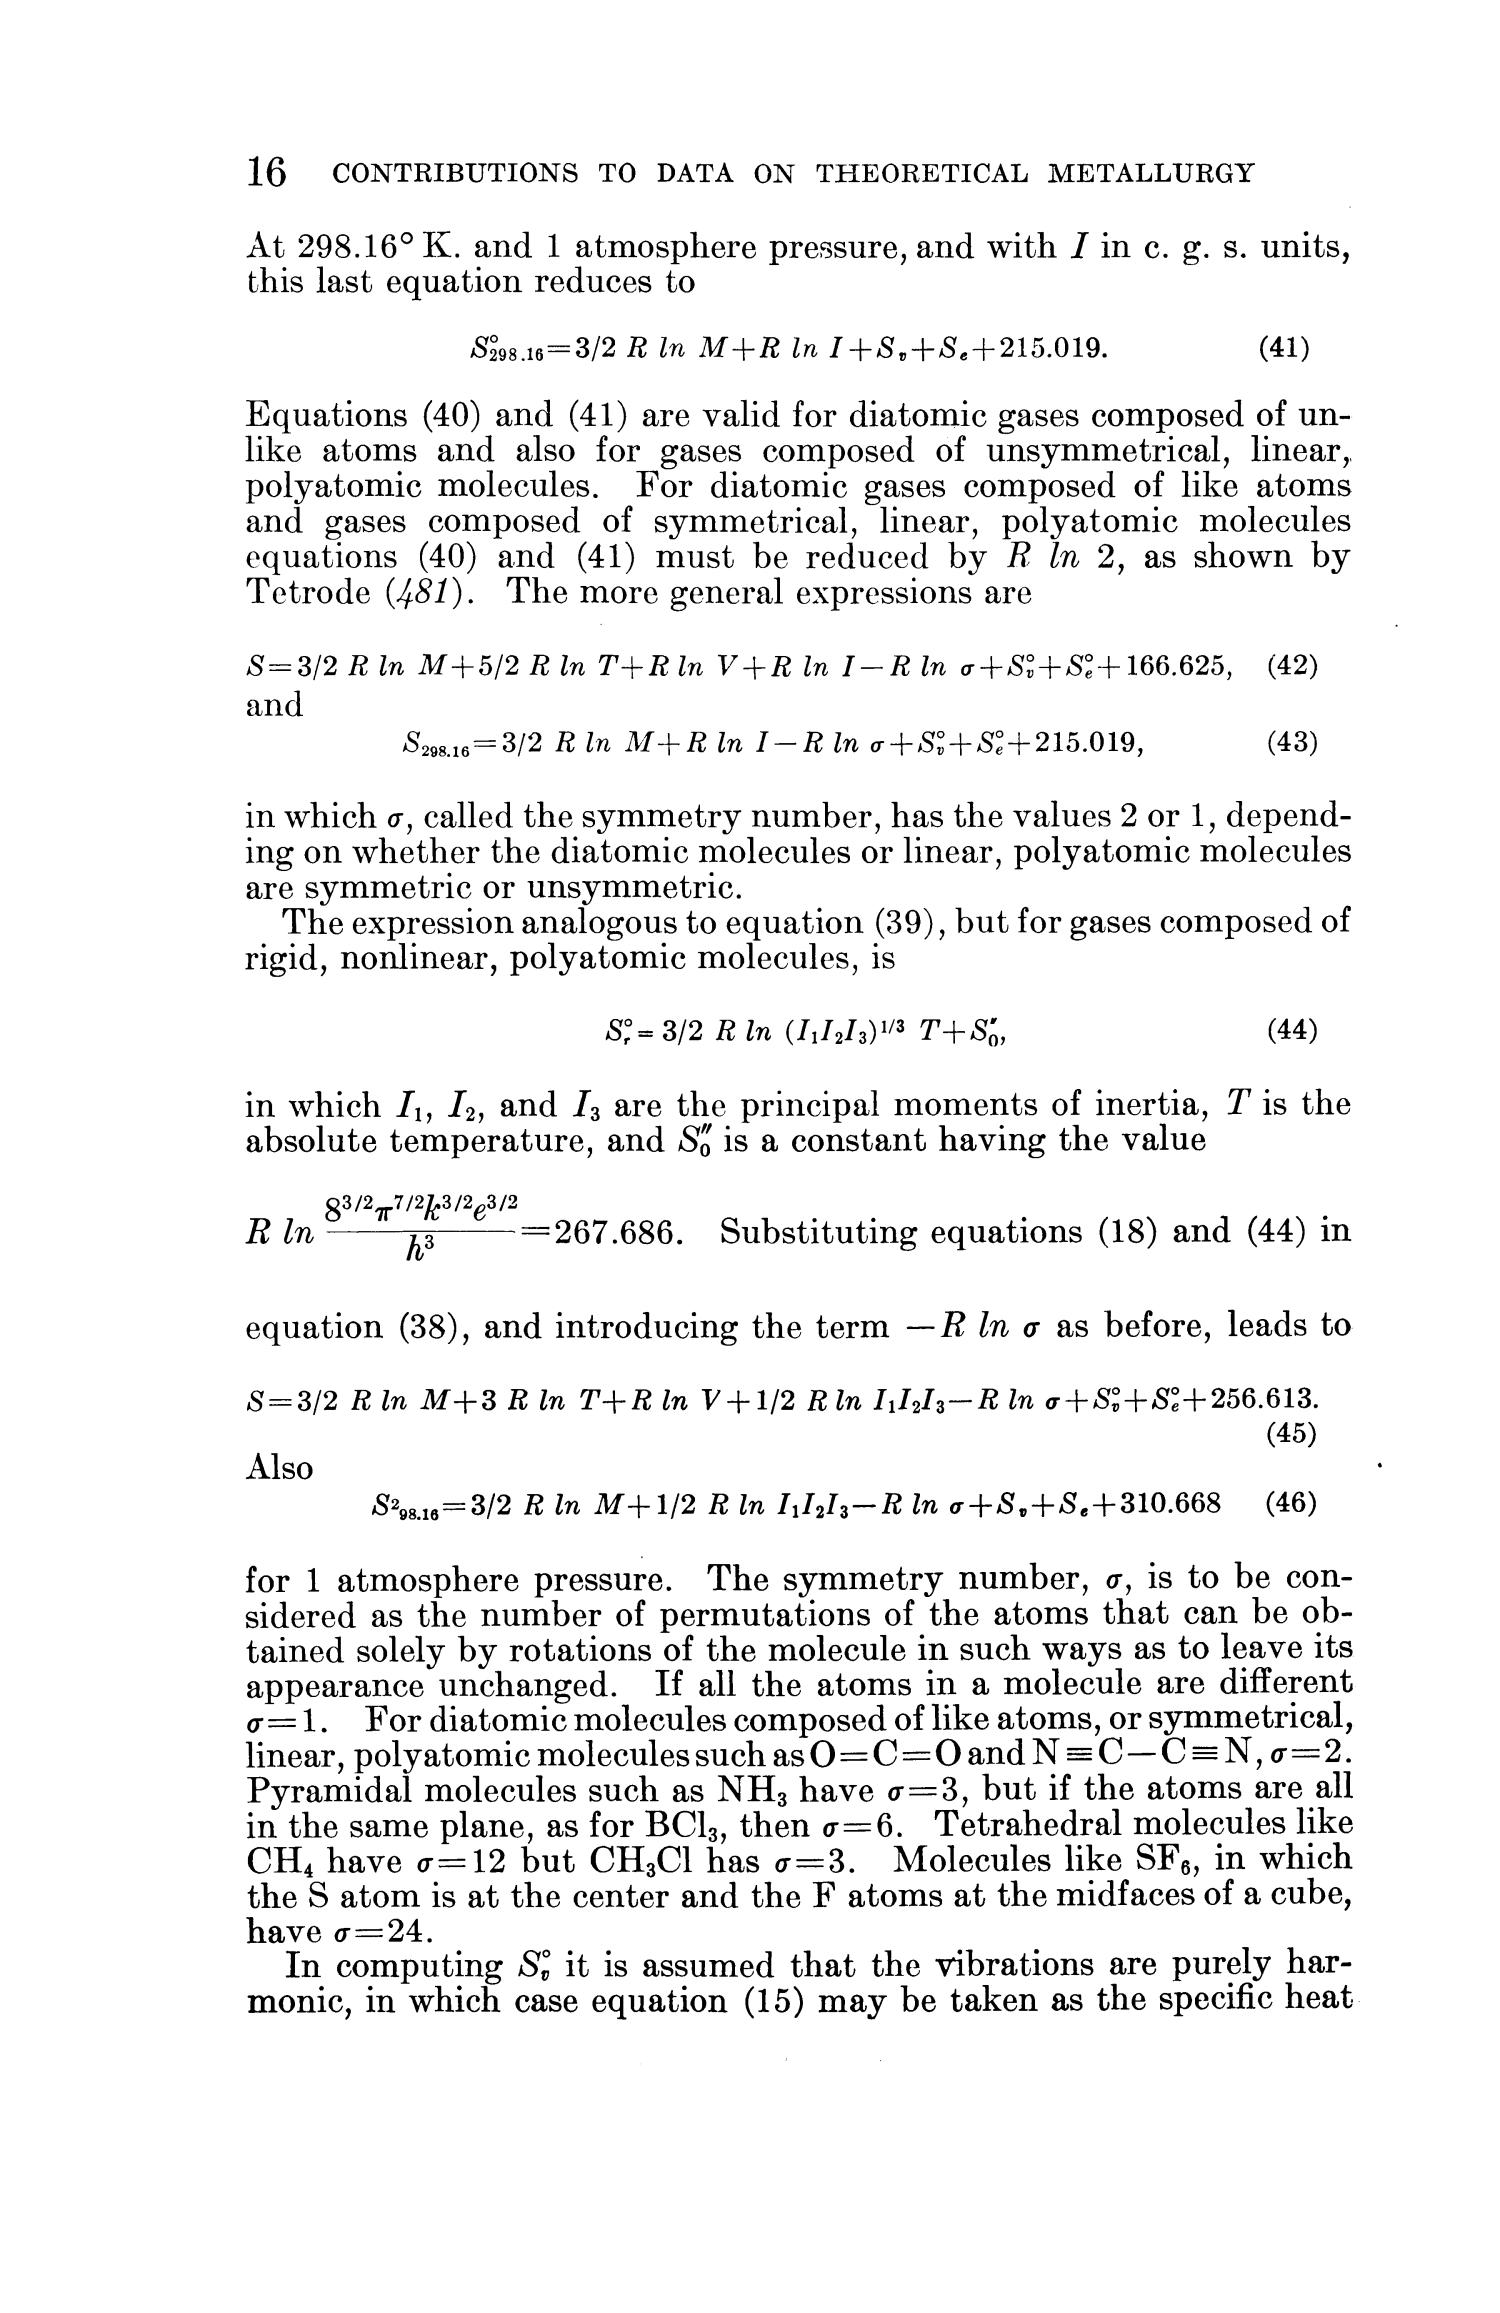 Contributions to the Data on Theoretical Metallurgy: [Part] 11. Entropies of Inorganic Substances: Revision (1948) of Data and Methods of Calculation                                                                                                      16